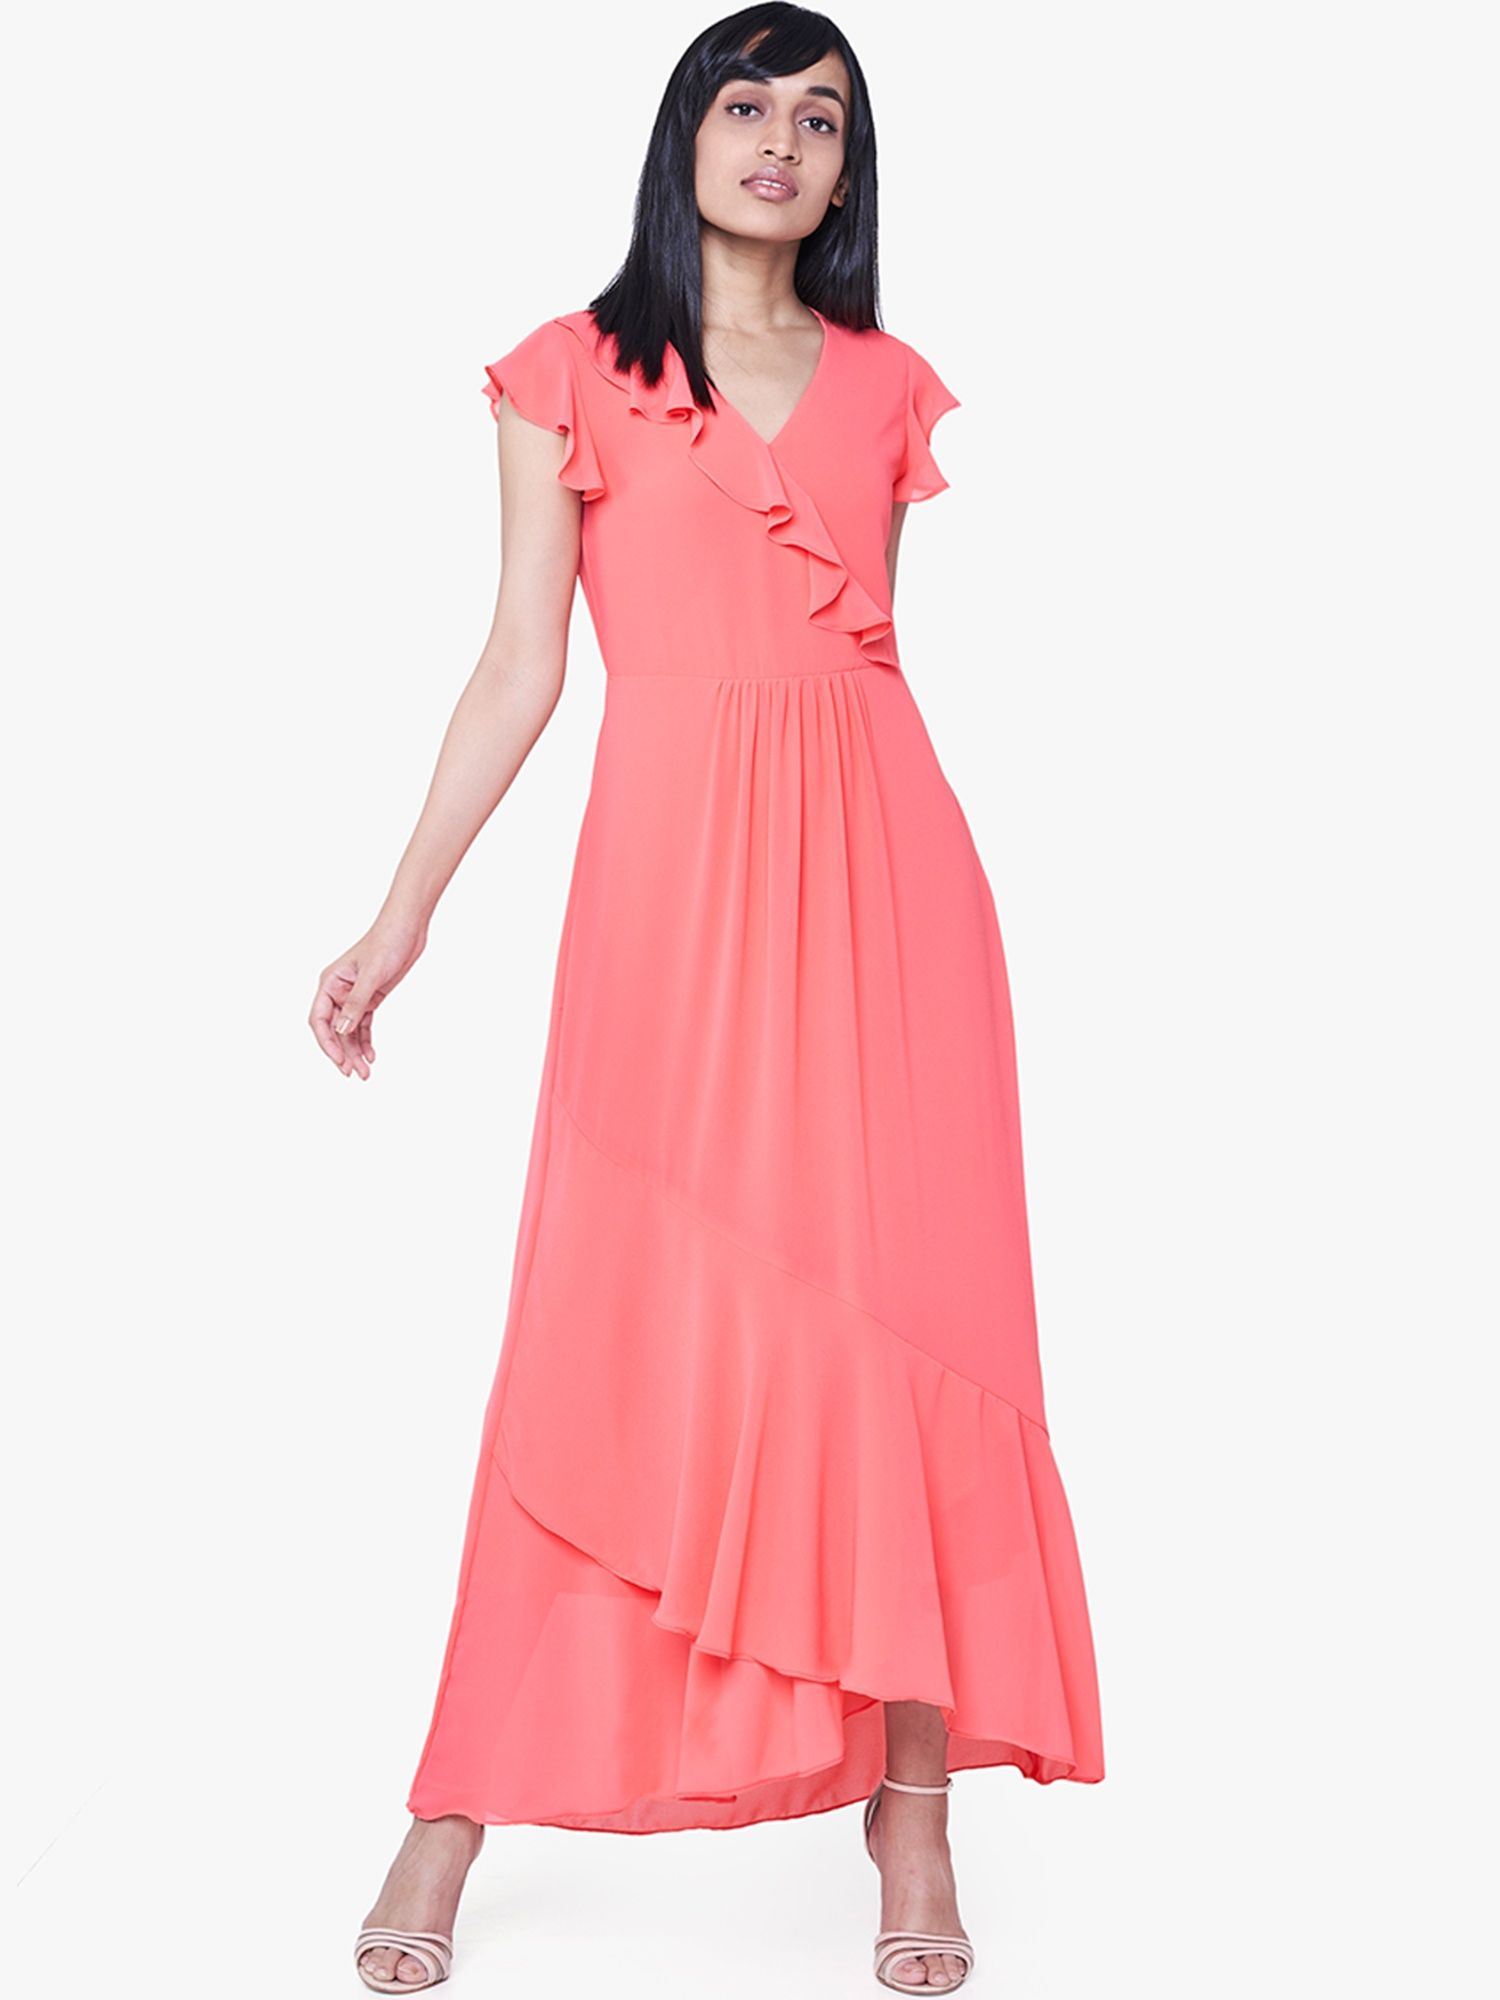 c60c75c61700 AND Gowns : Buy AND Coral Ruffled Maxi Dress Online | Nykaa Fashion.